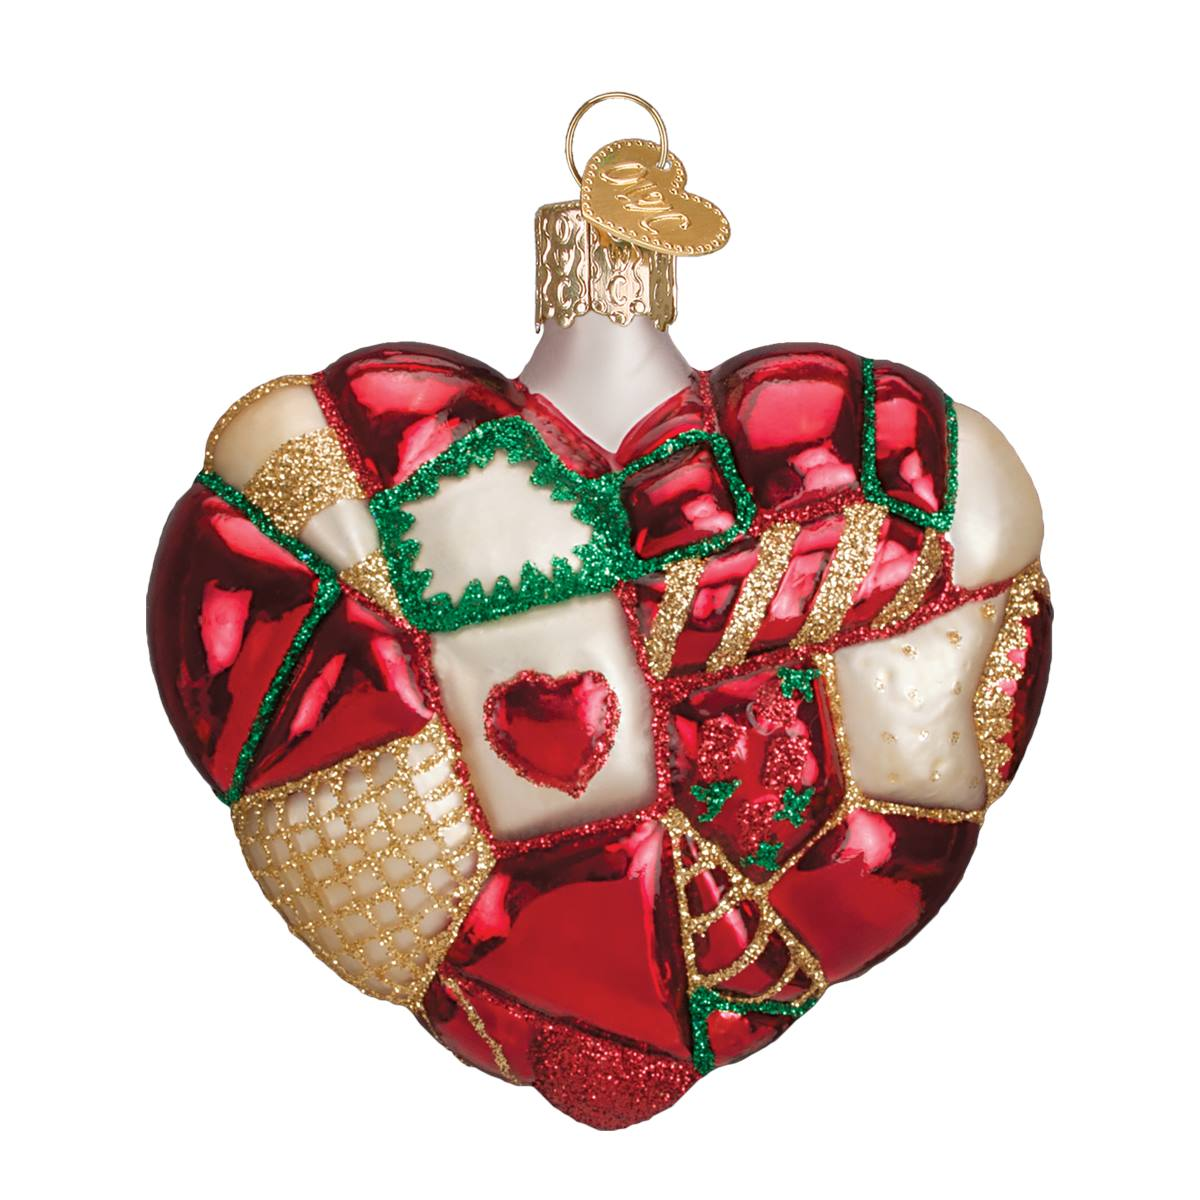 Patchwork Heart Ornament